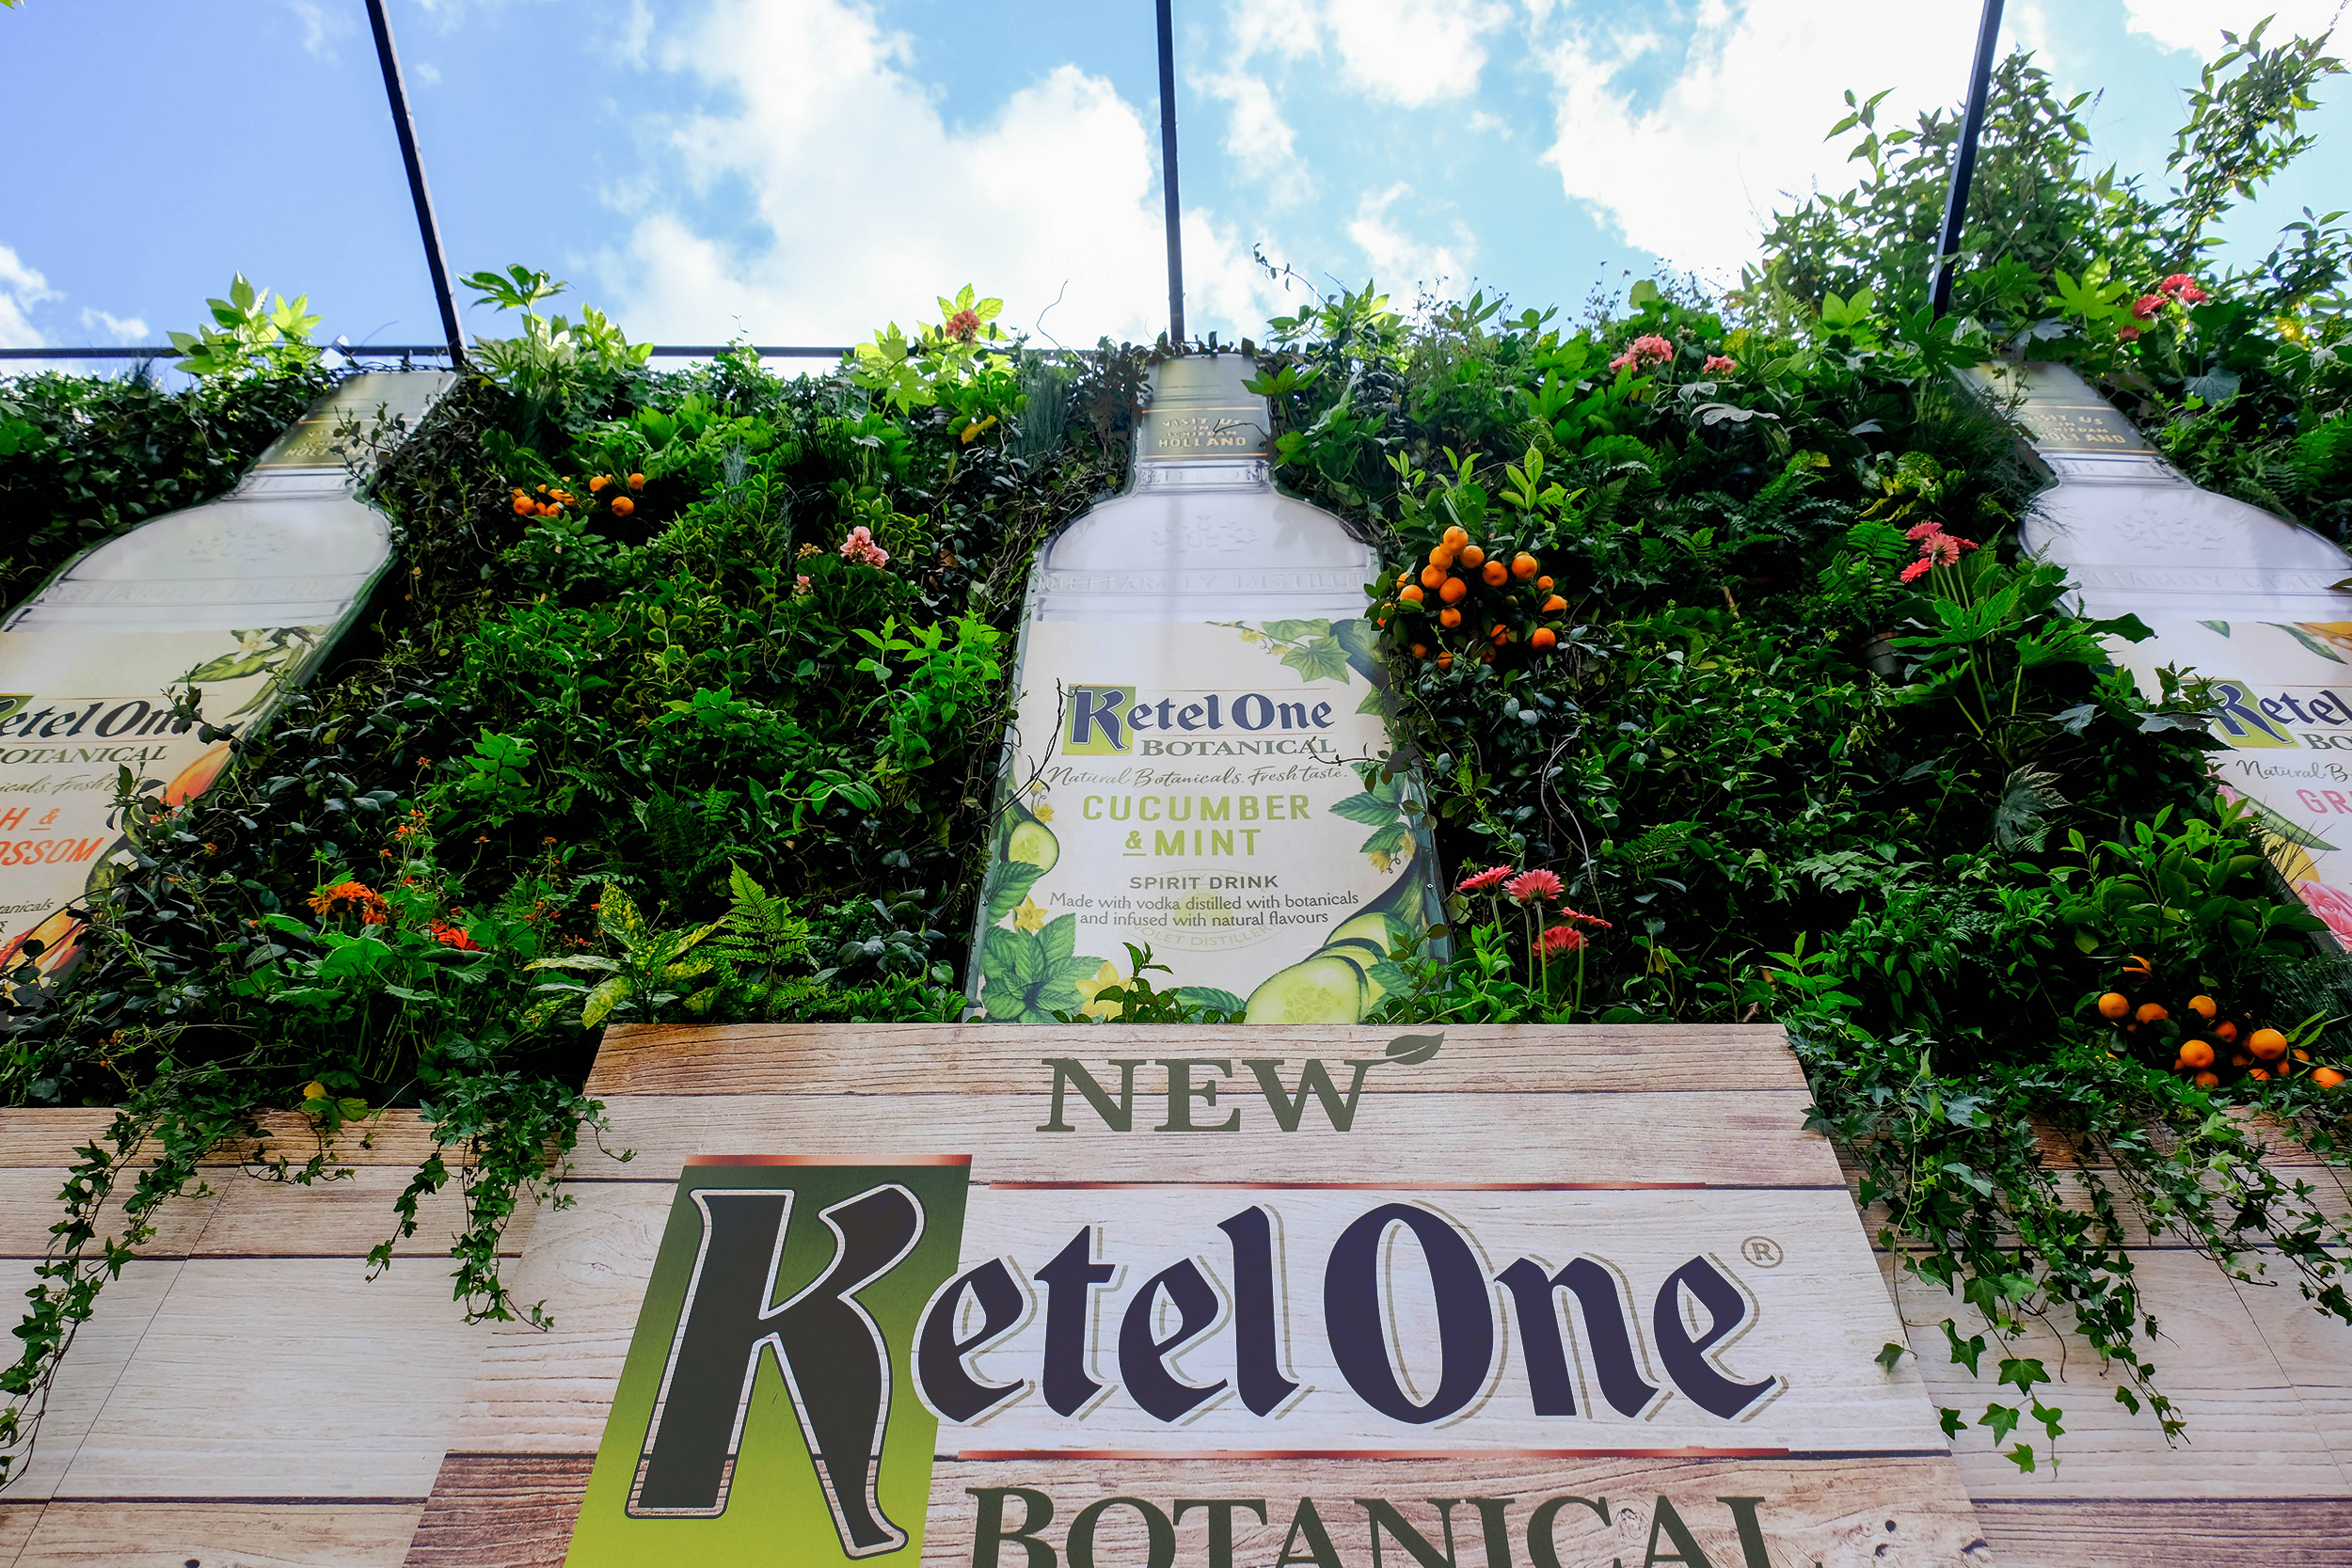 Ketel+One+Botanical+Living+Billboard+close-up+2.jpg